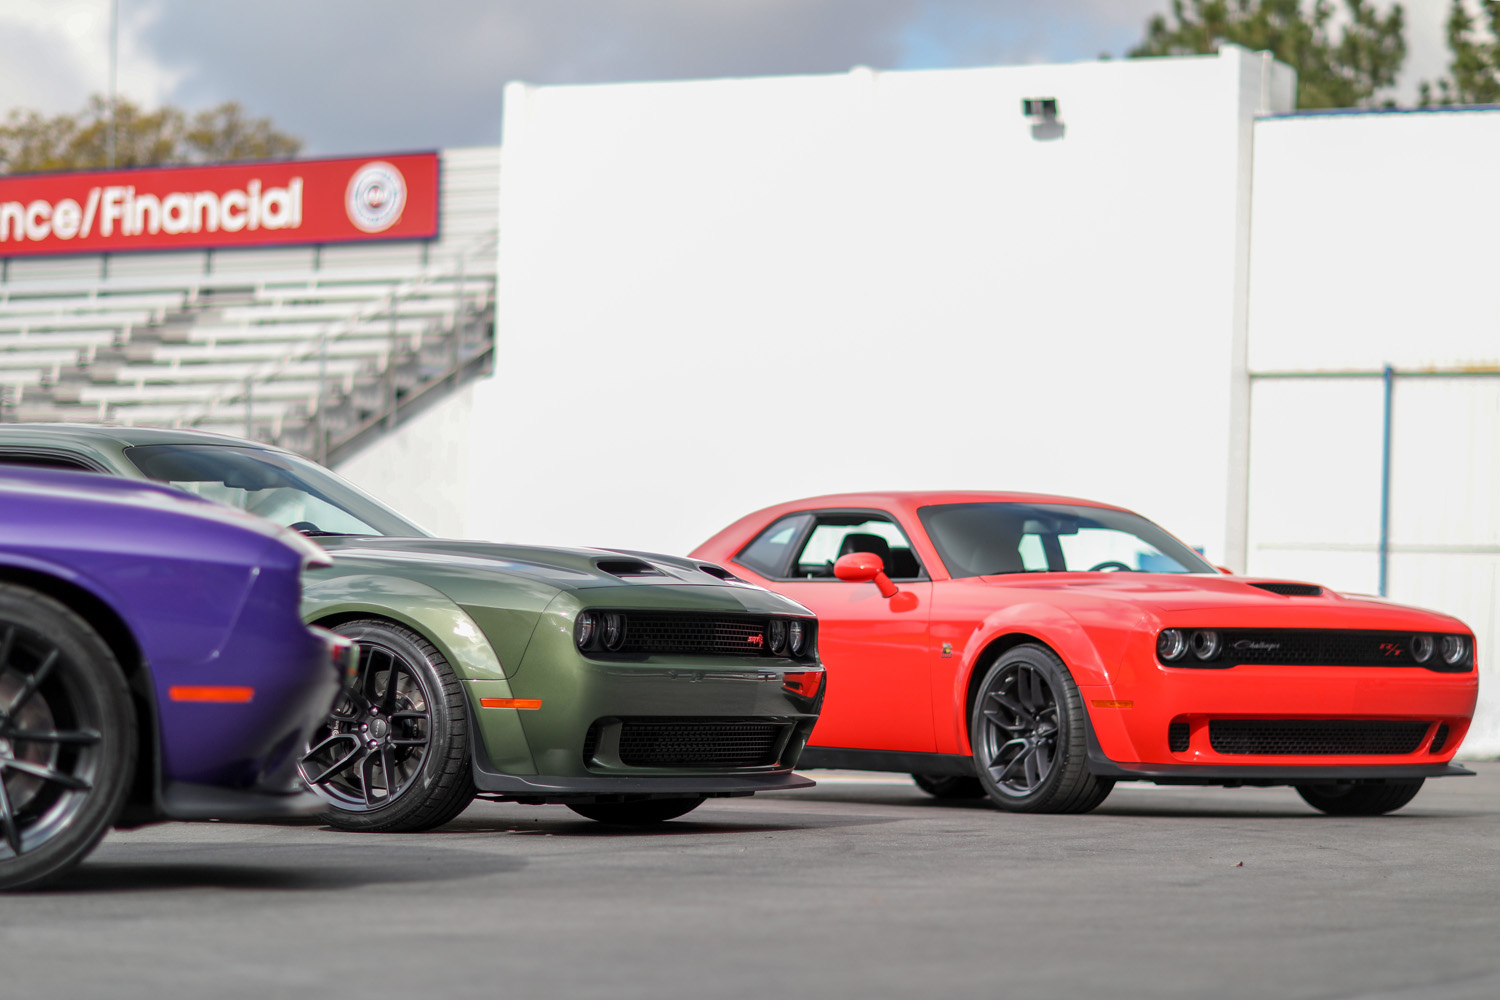 2019 Challenger R/T Scat Pack 1320 Lineup